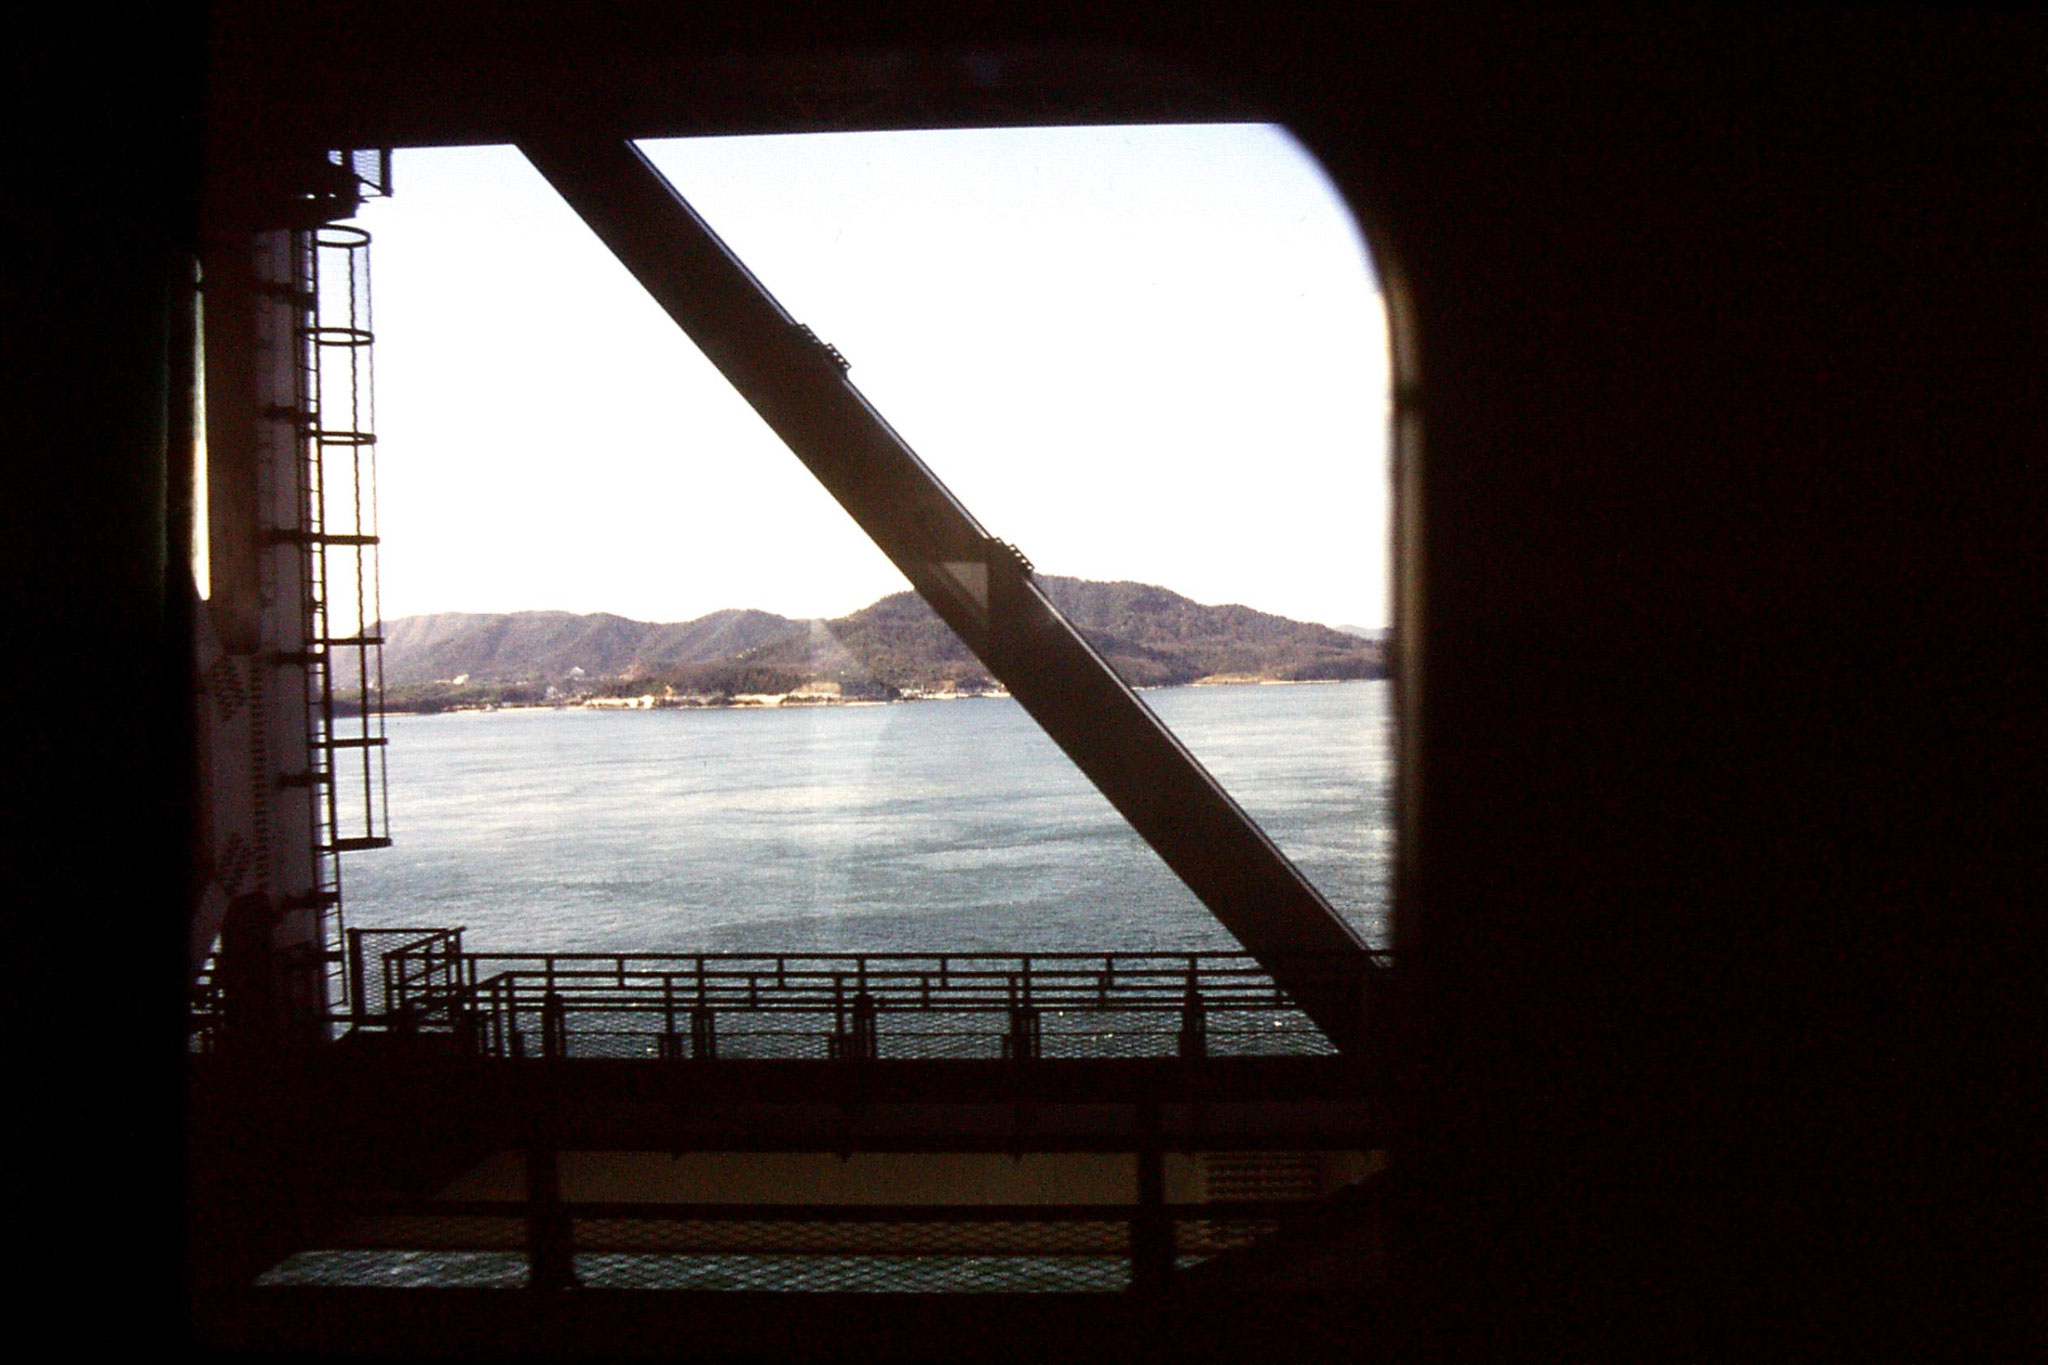 24/1/1989: 23: bridge over Seto Sea